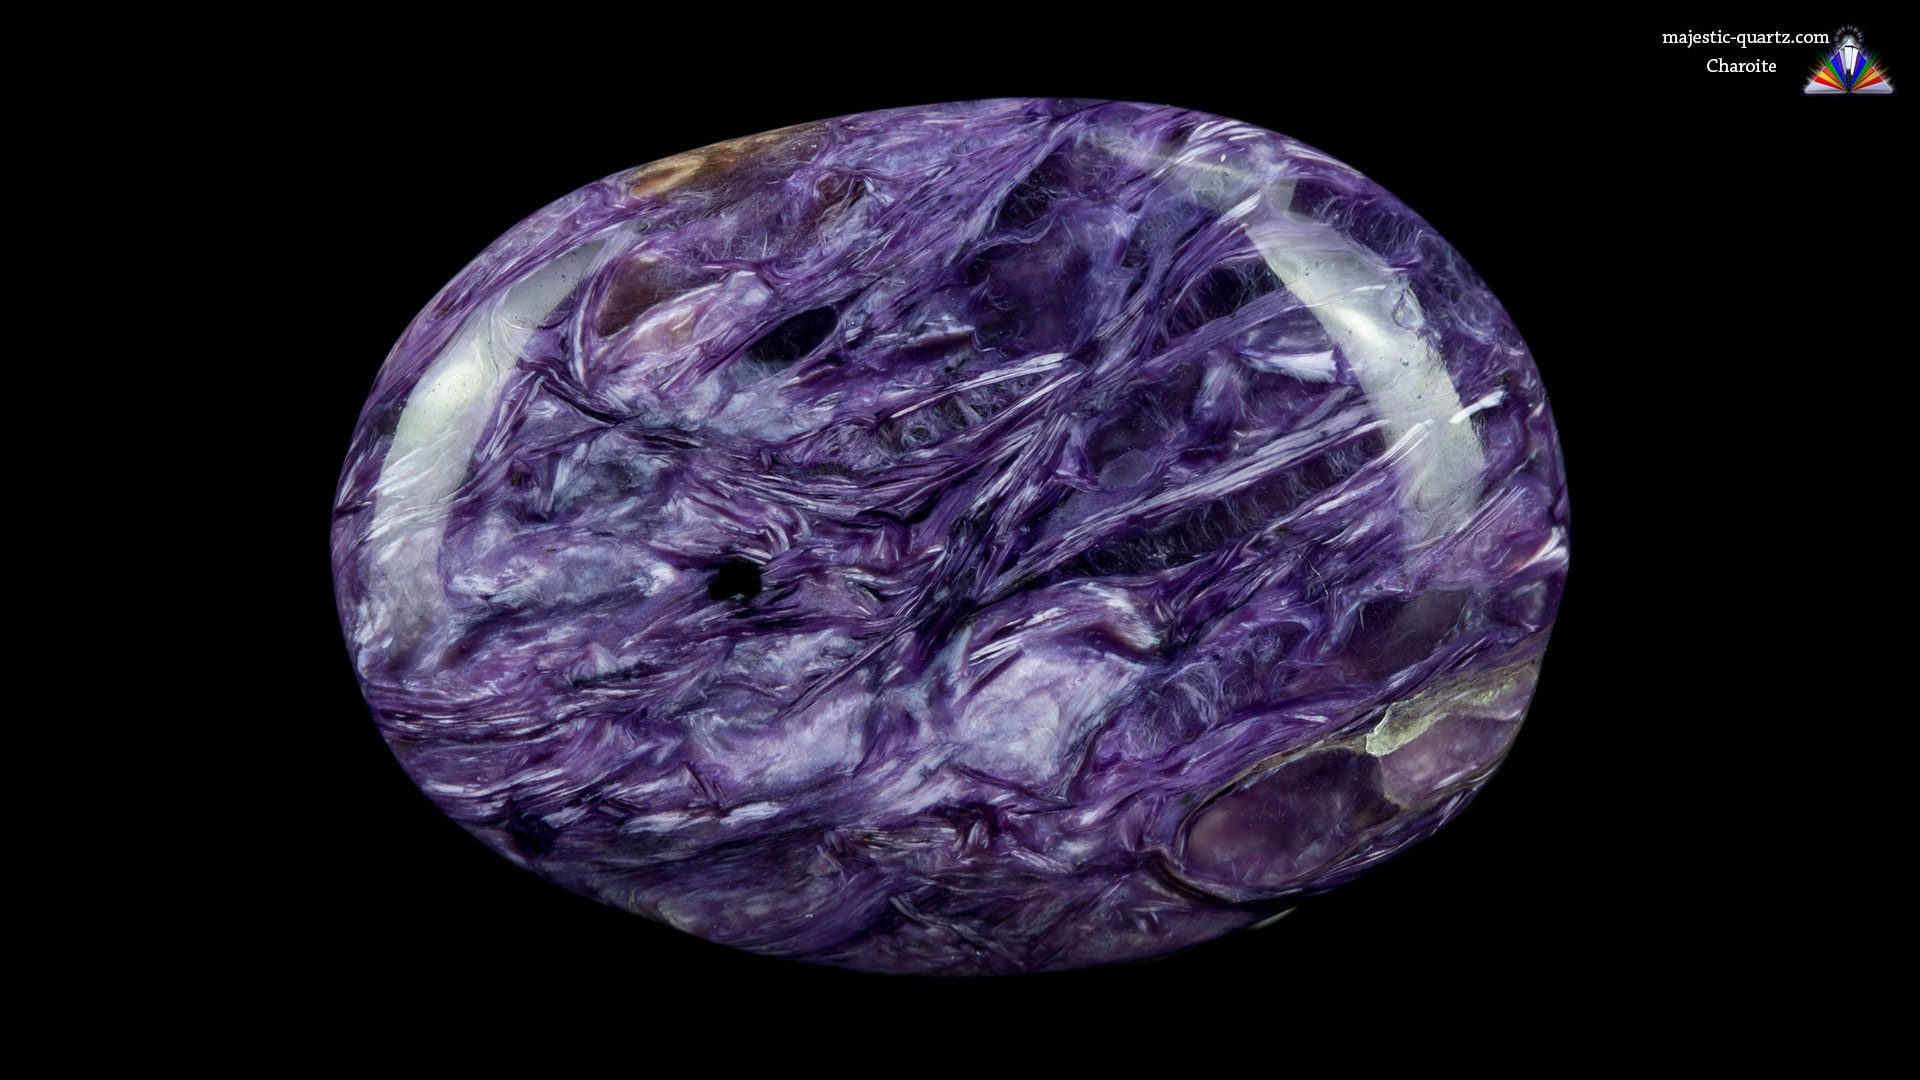 Charoite Mineral Specimen - Photograph by Anthony Bradford